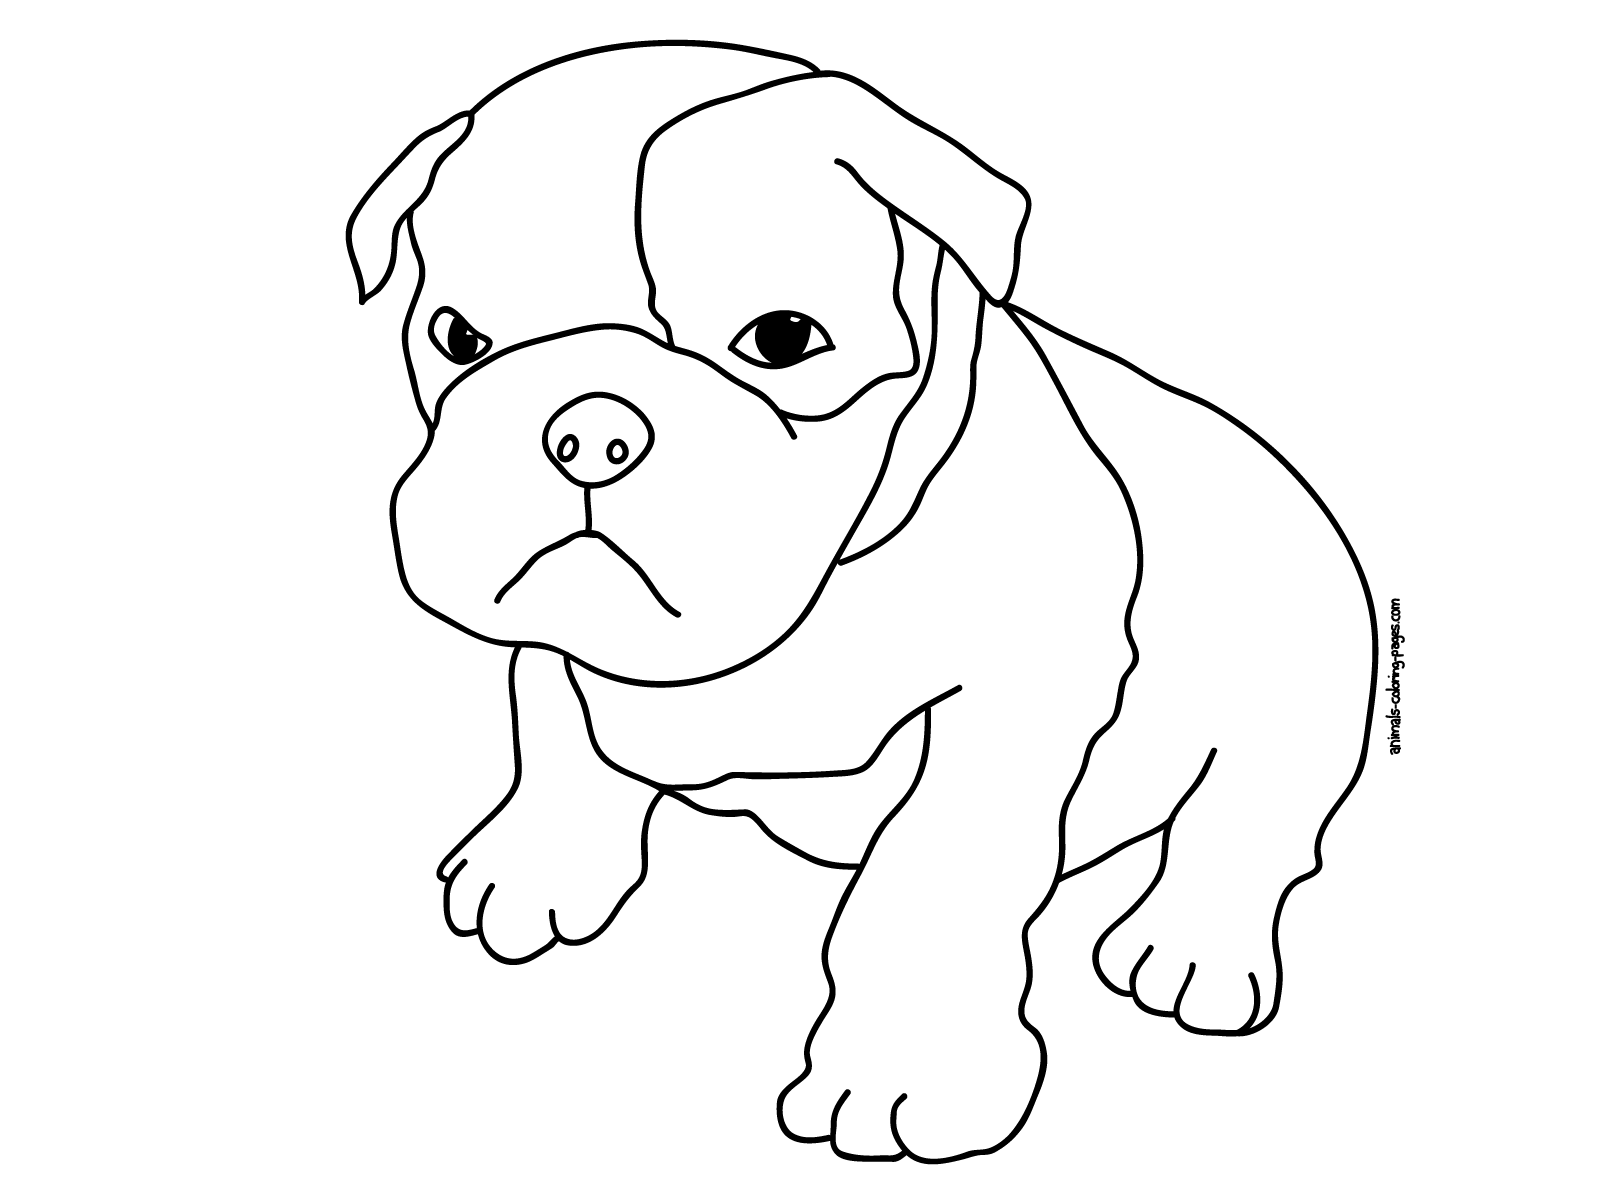 Cute Animal Coloring Pages to Print Coloring page of a boxer